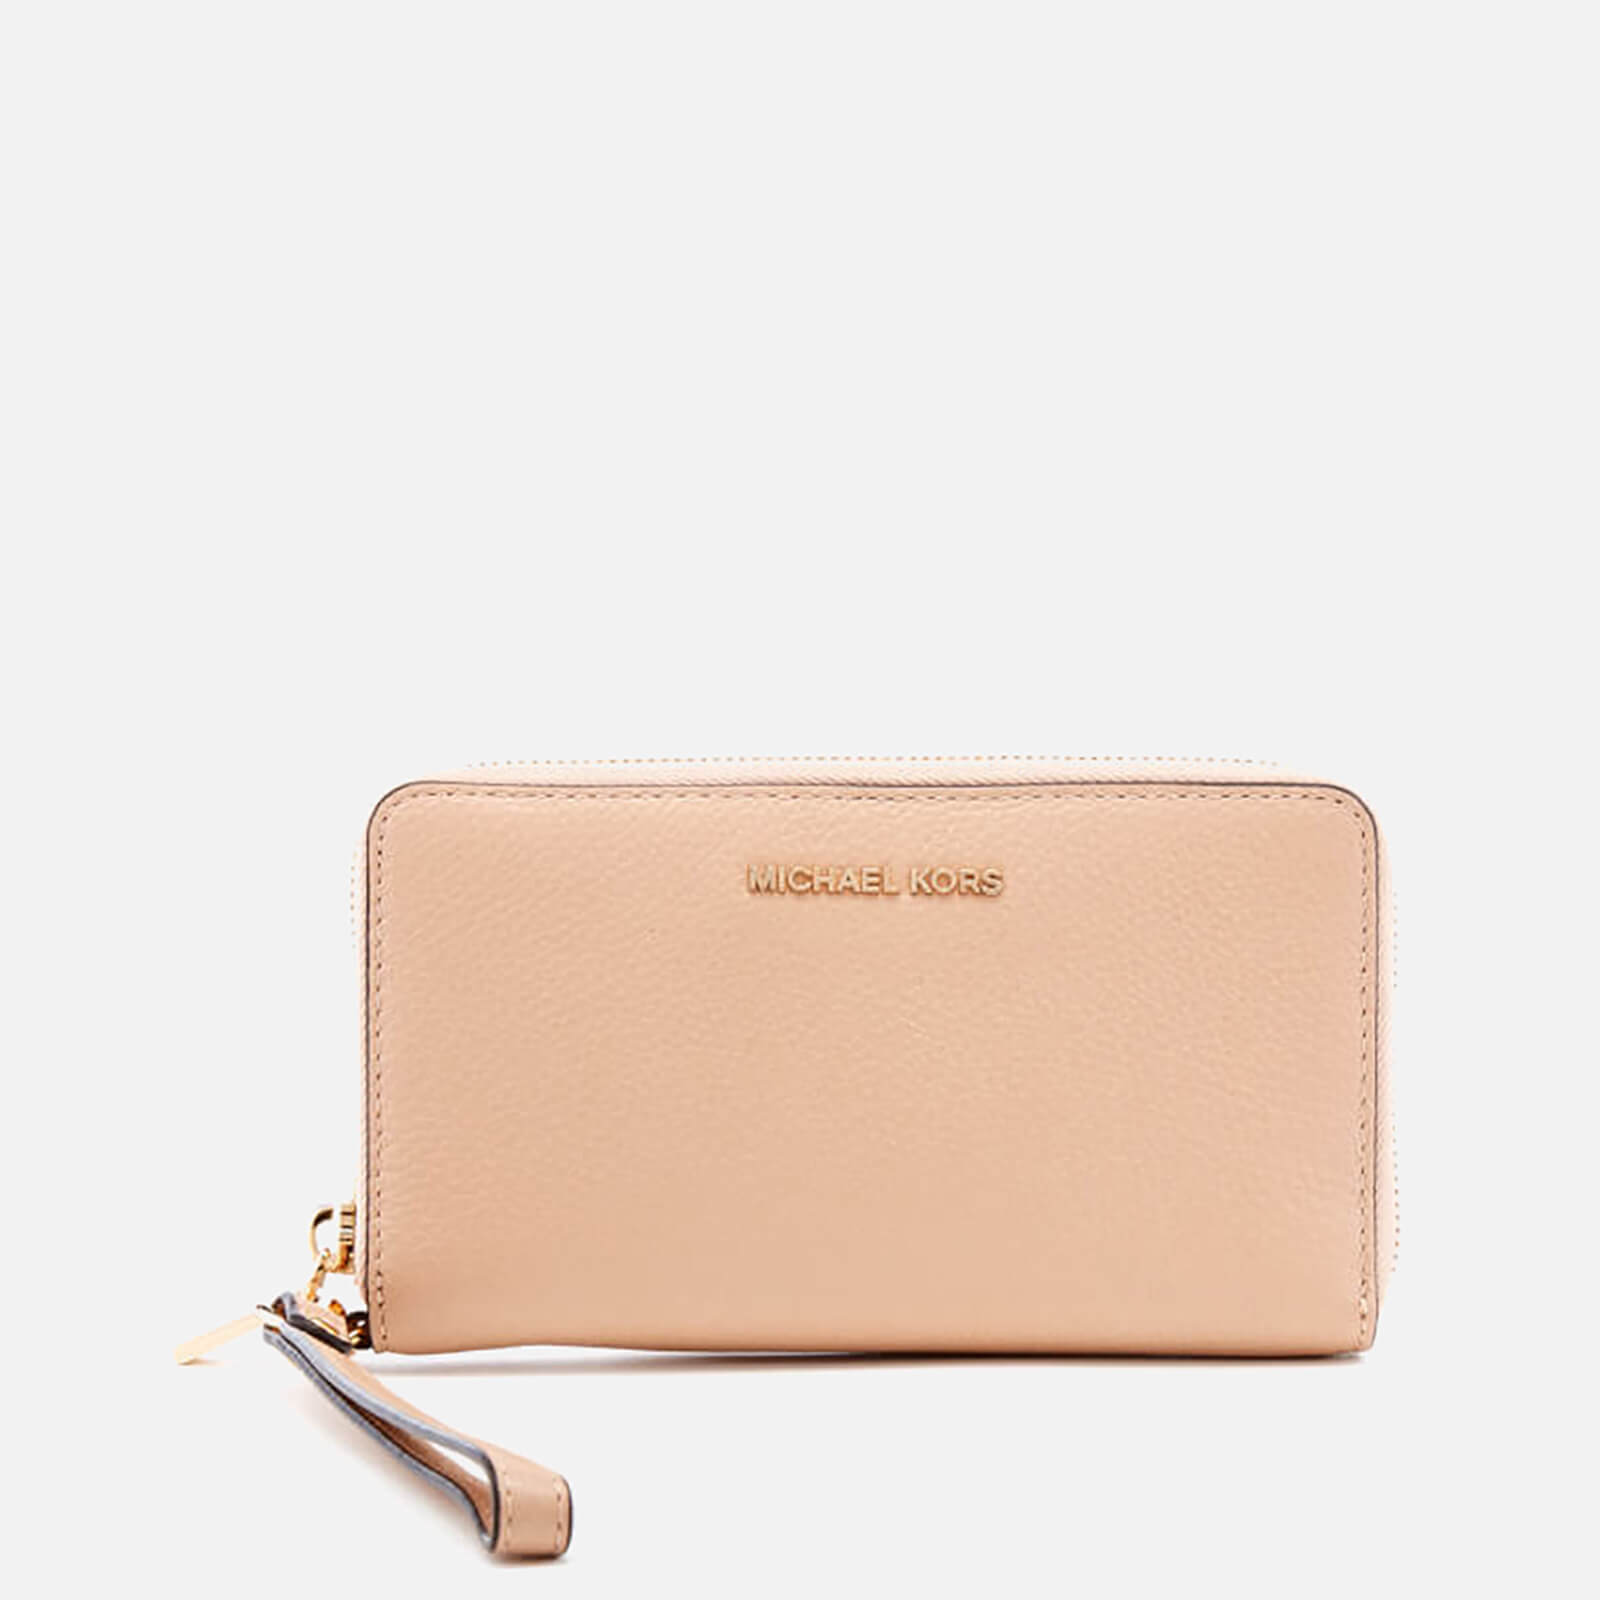 46ca969ae382 MICHAEL MICHAEL KORS Women's Mercer Large Flat Multifunction Phone Purse -  Oyster - Free UK Delivery over £50